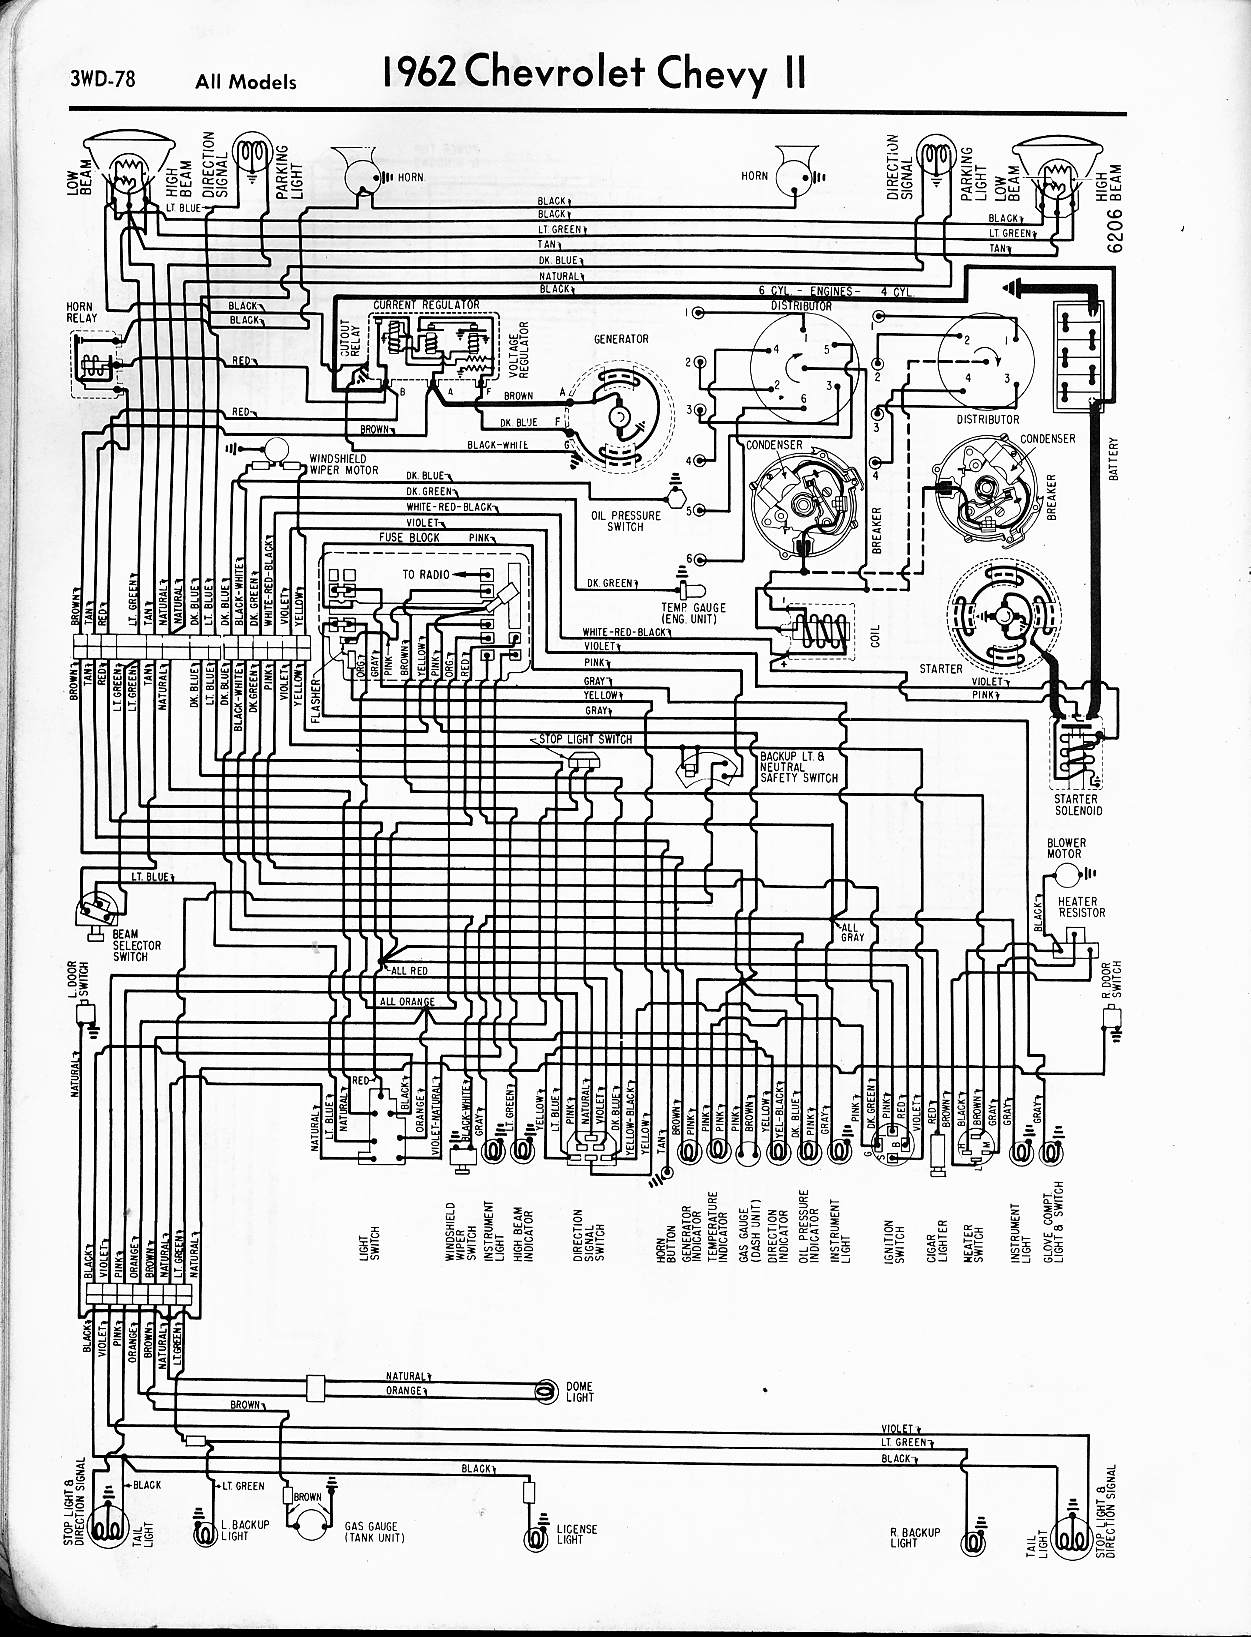 MWireChev62_3WD 078 1968 impala wiring diagram wiring diagram simonand 1968 impala wiring diagram at alyssarenee.co